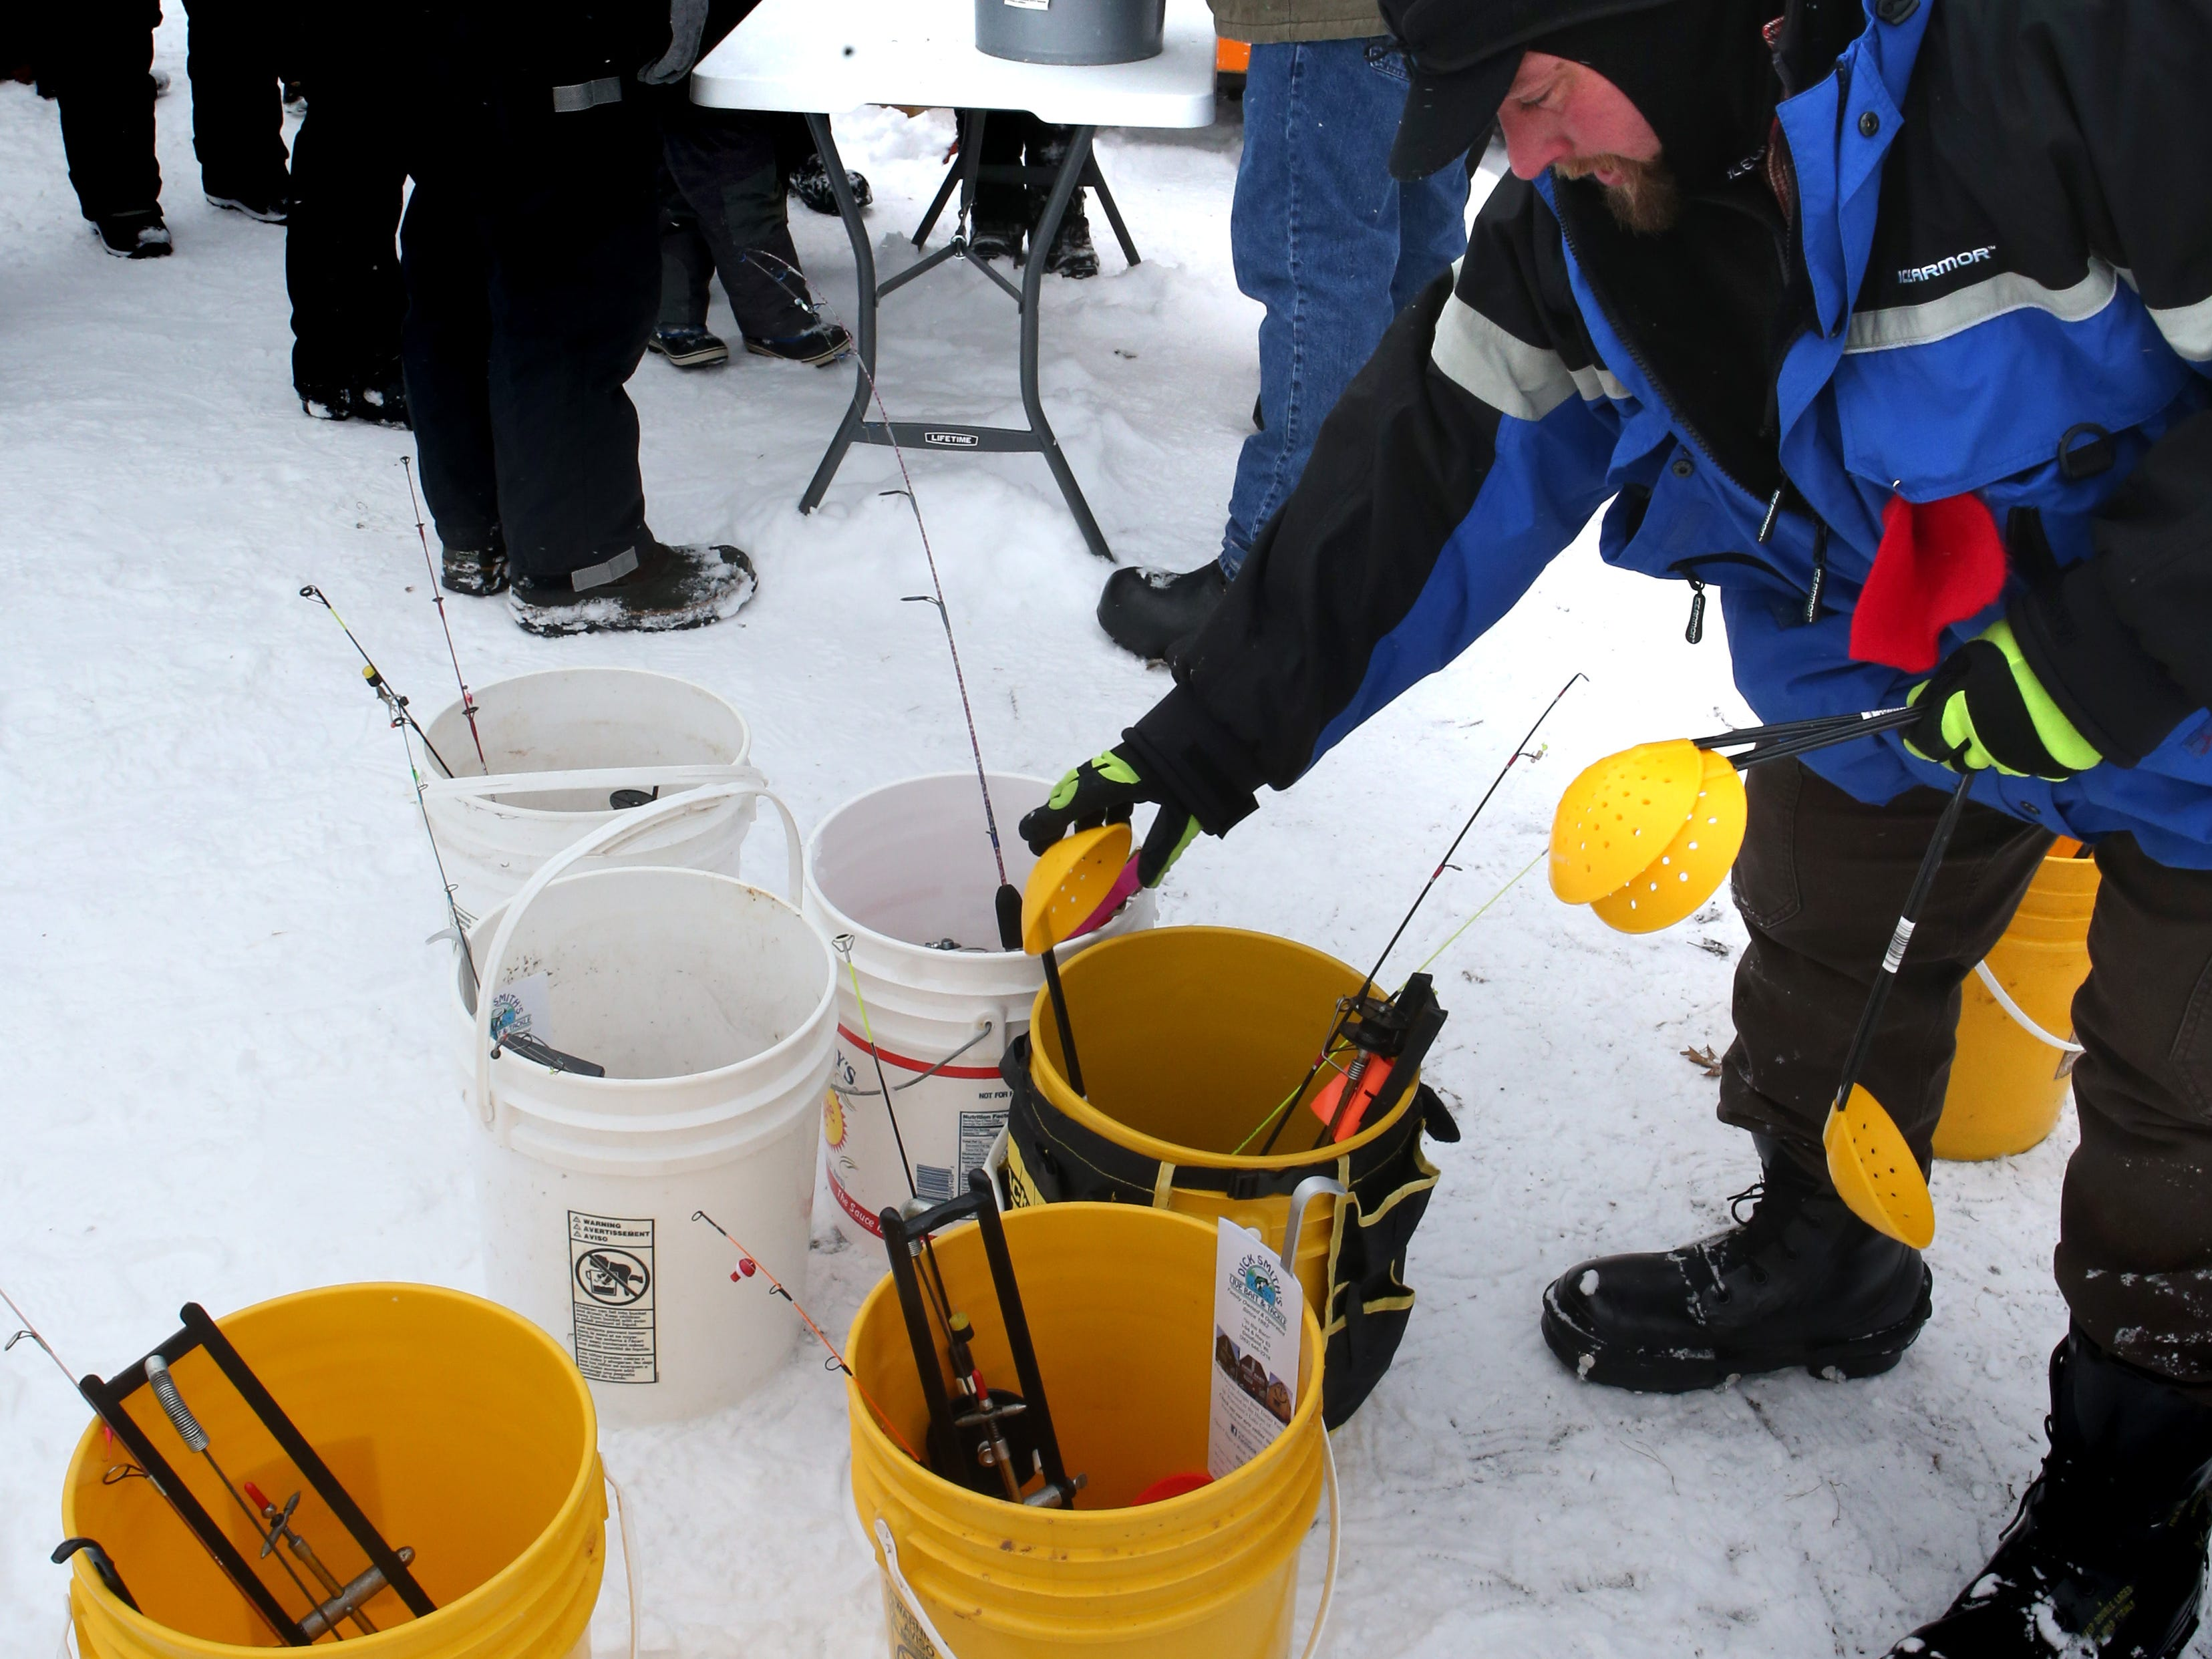 Tony Dittmann sets up buckets containing a tip up and jig poles to be loaned to families to try ice fishing on Lower Genesee Lake in Summit during a free instructional ice fishing day hosted by Sons of the Watertown American Legion Post 189 on Jan. 19. The event drew more than 50 children and their attending adults.